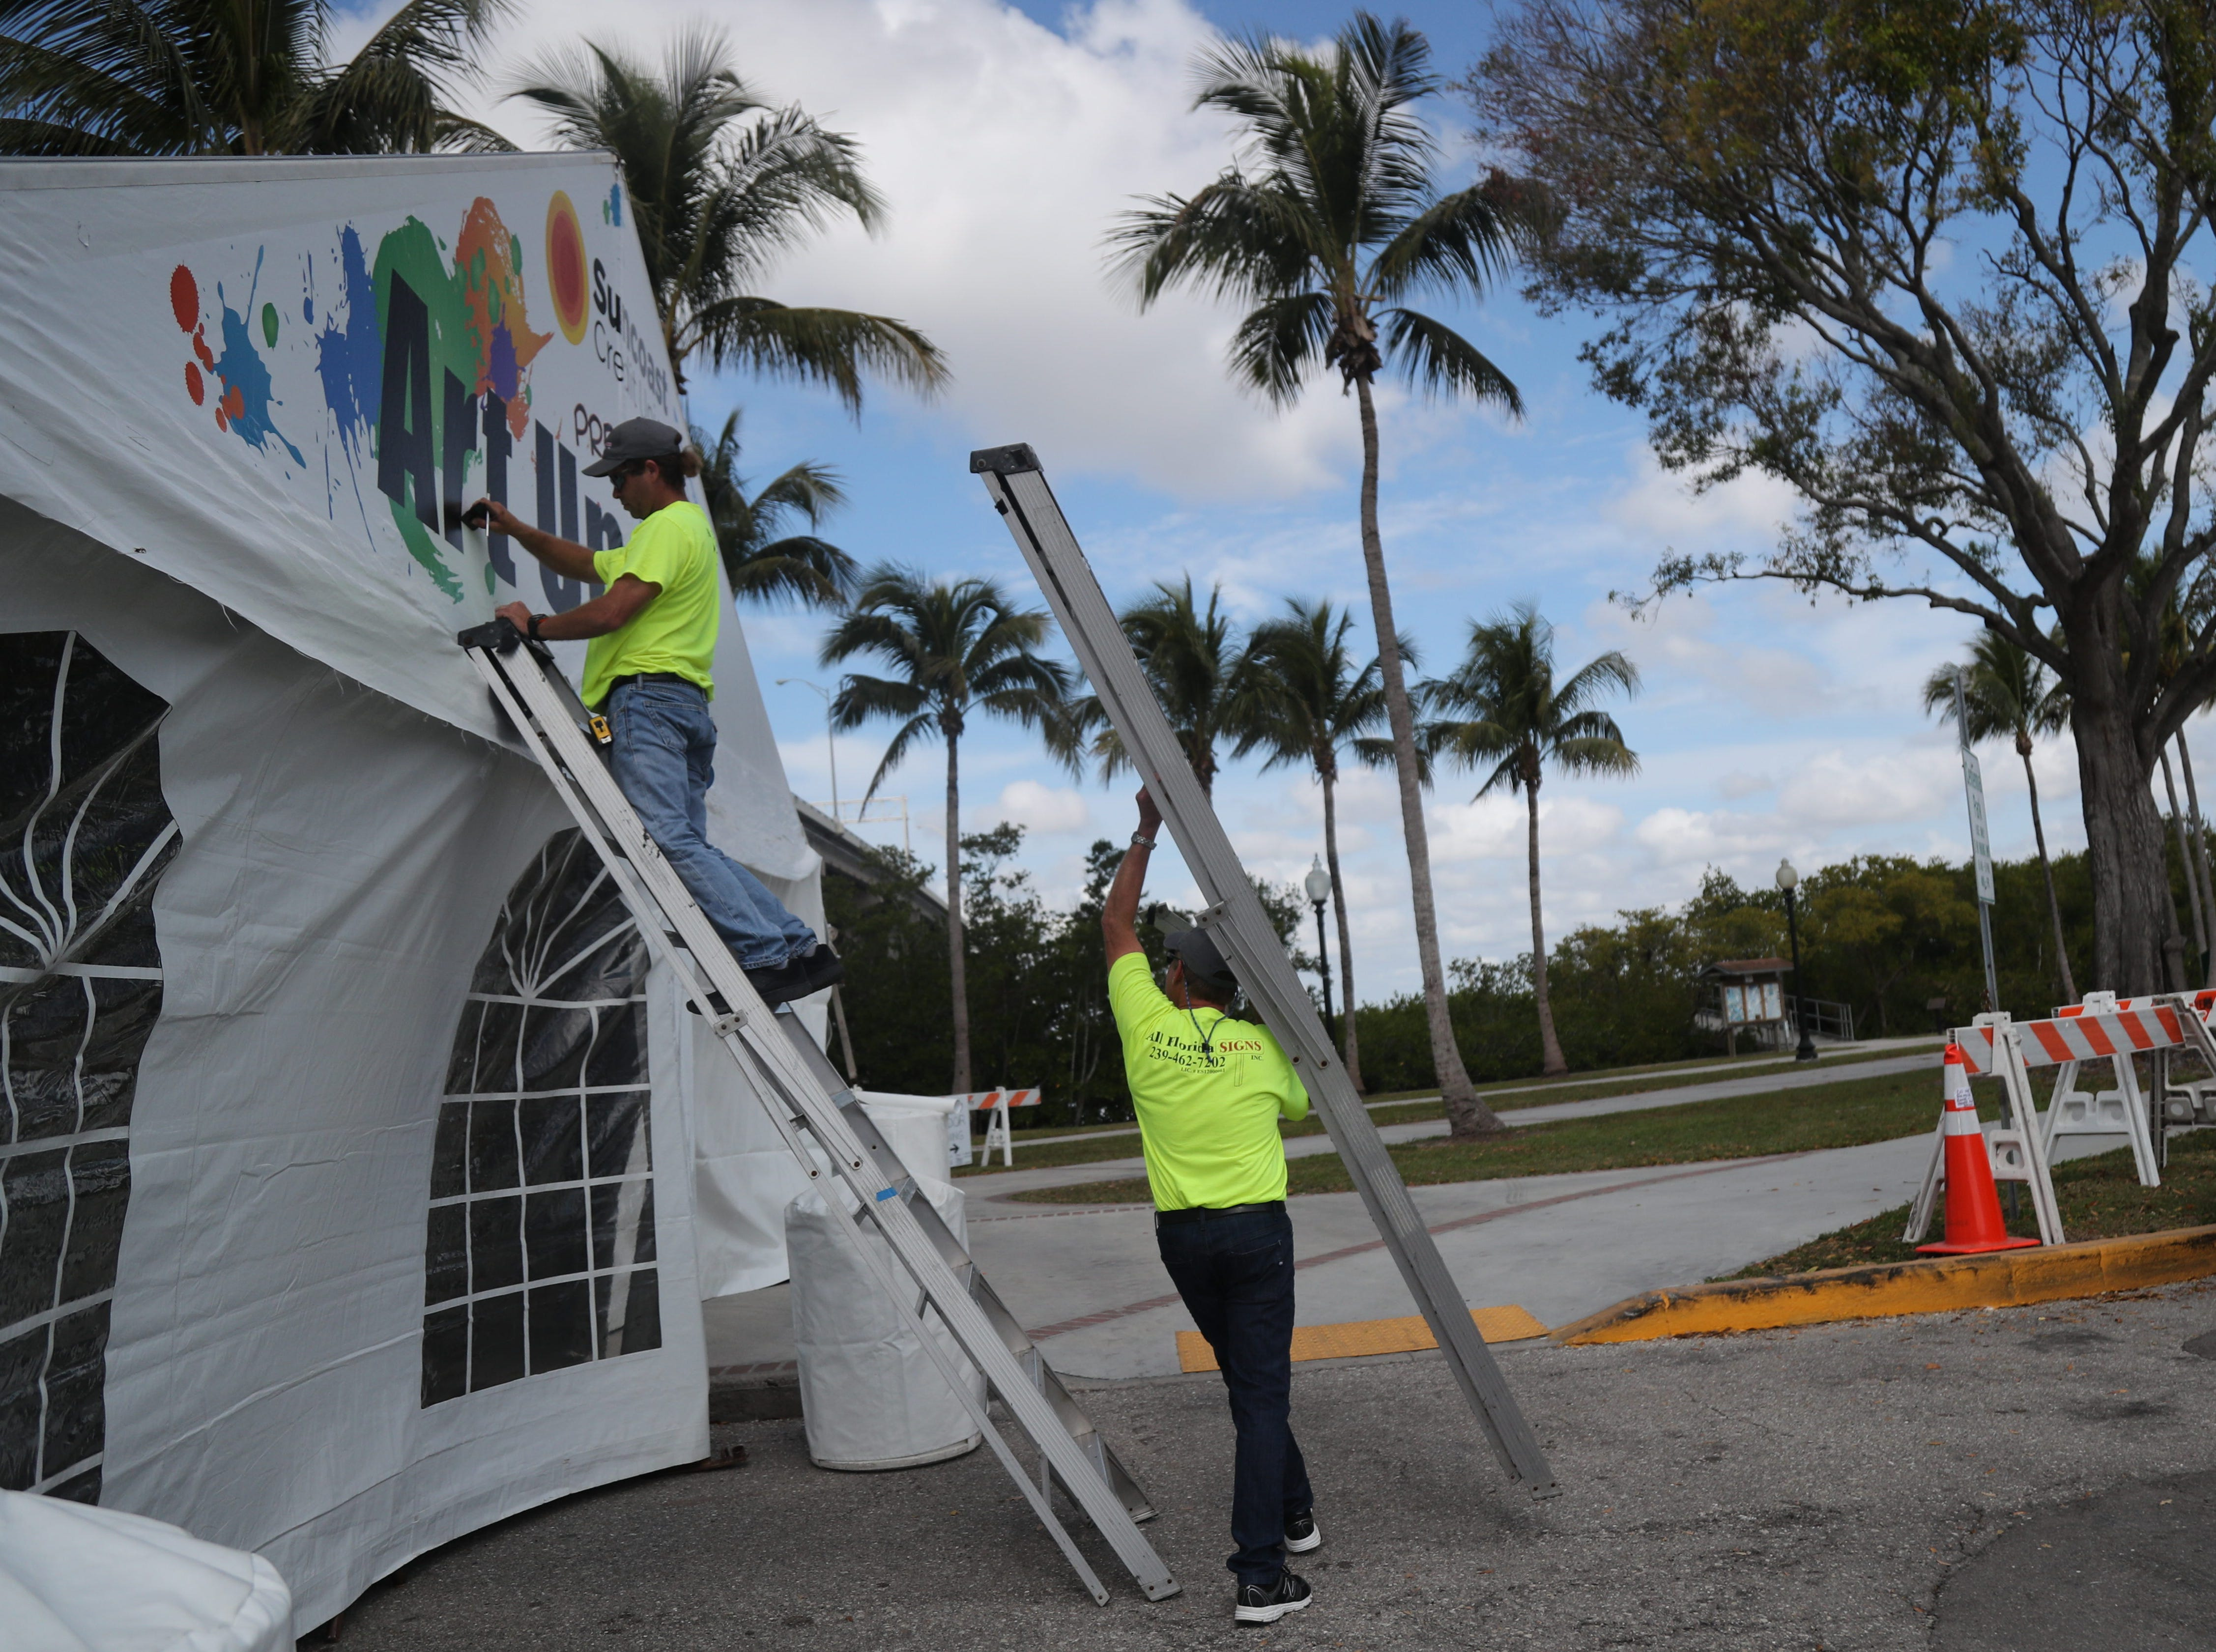 Ryan Freeman, left, and Leroy Leonov add the sign to the Art Under 20 tent at ArtFest in downtown Fort Myers on Friday, Feb 1, 2019.